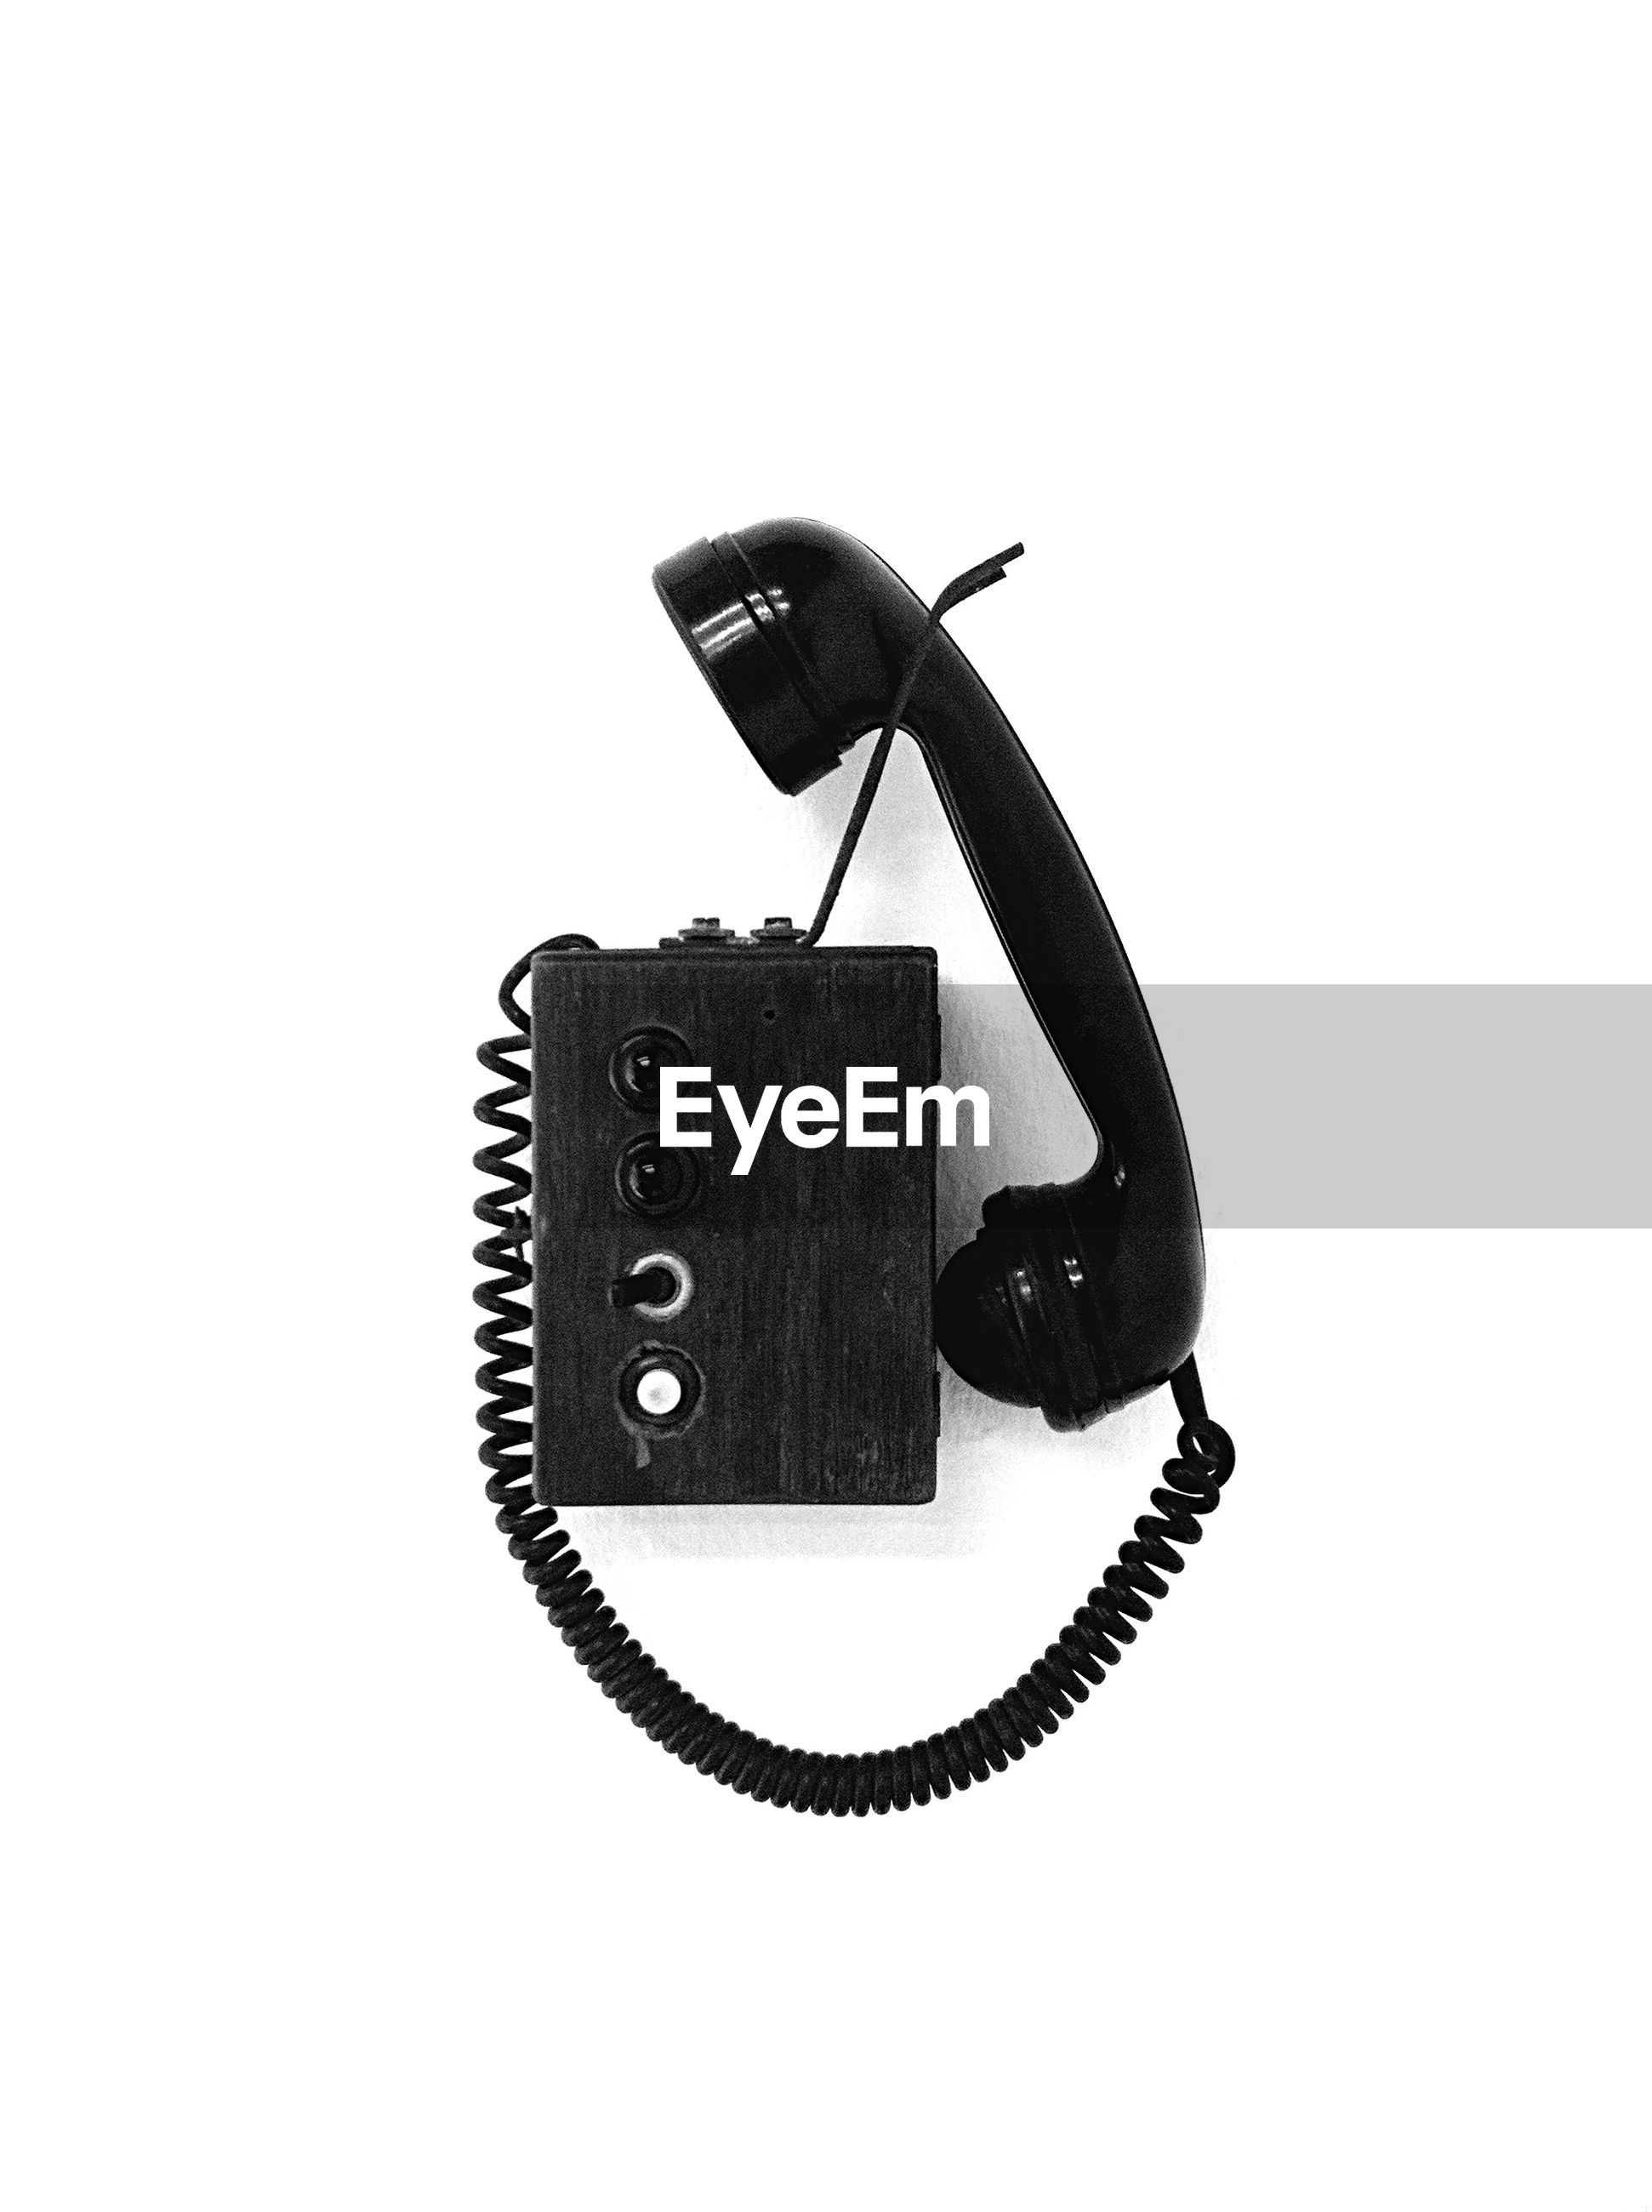 Close-up of old-fashioned telephone on white background